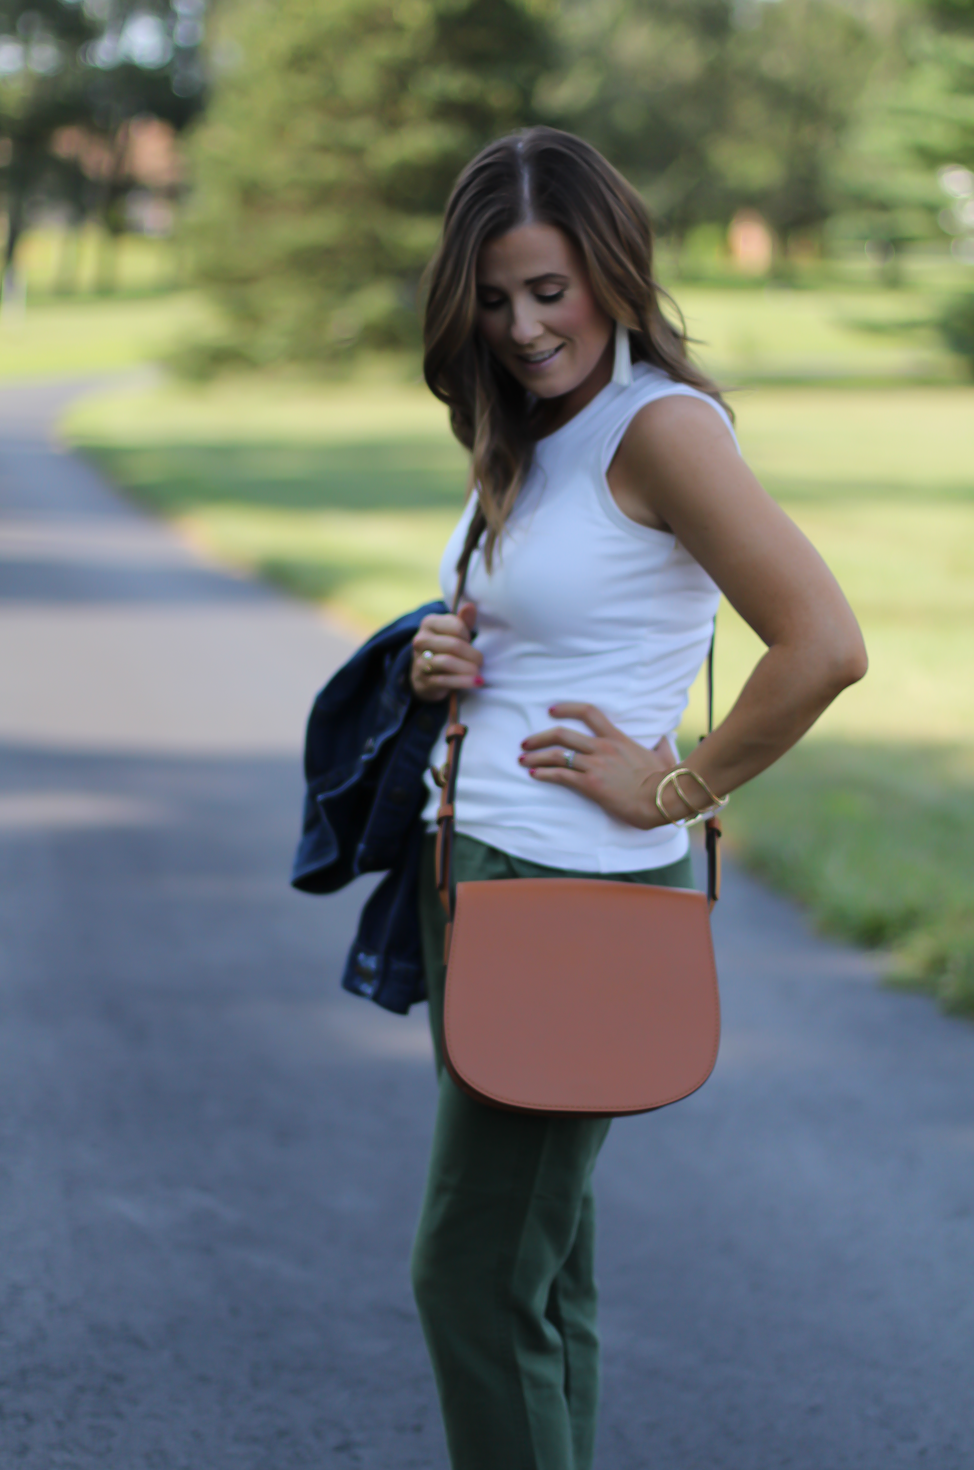 Army Green Joggers, White Sleeveless Shell Tee, Gladiator Sandals, Saddle Bag, J.Crew, tory Burch, Ancient Gladiator 15